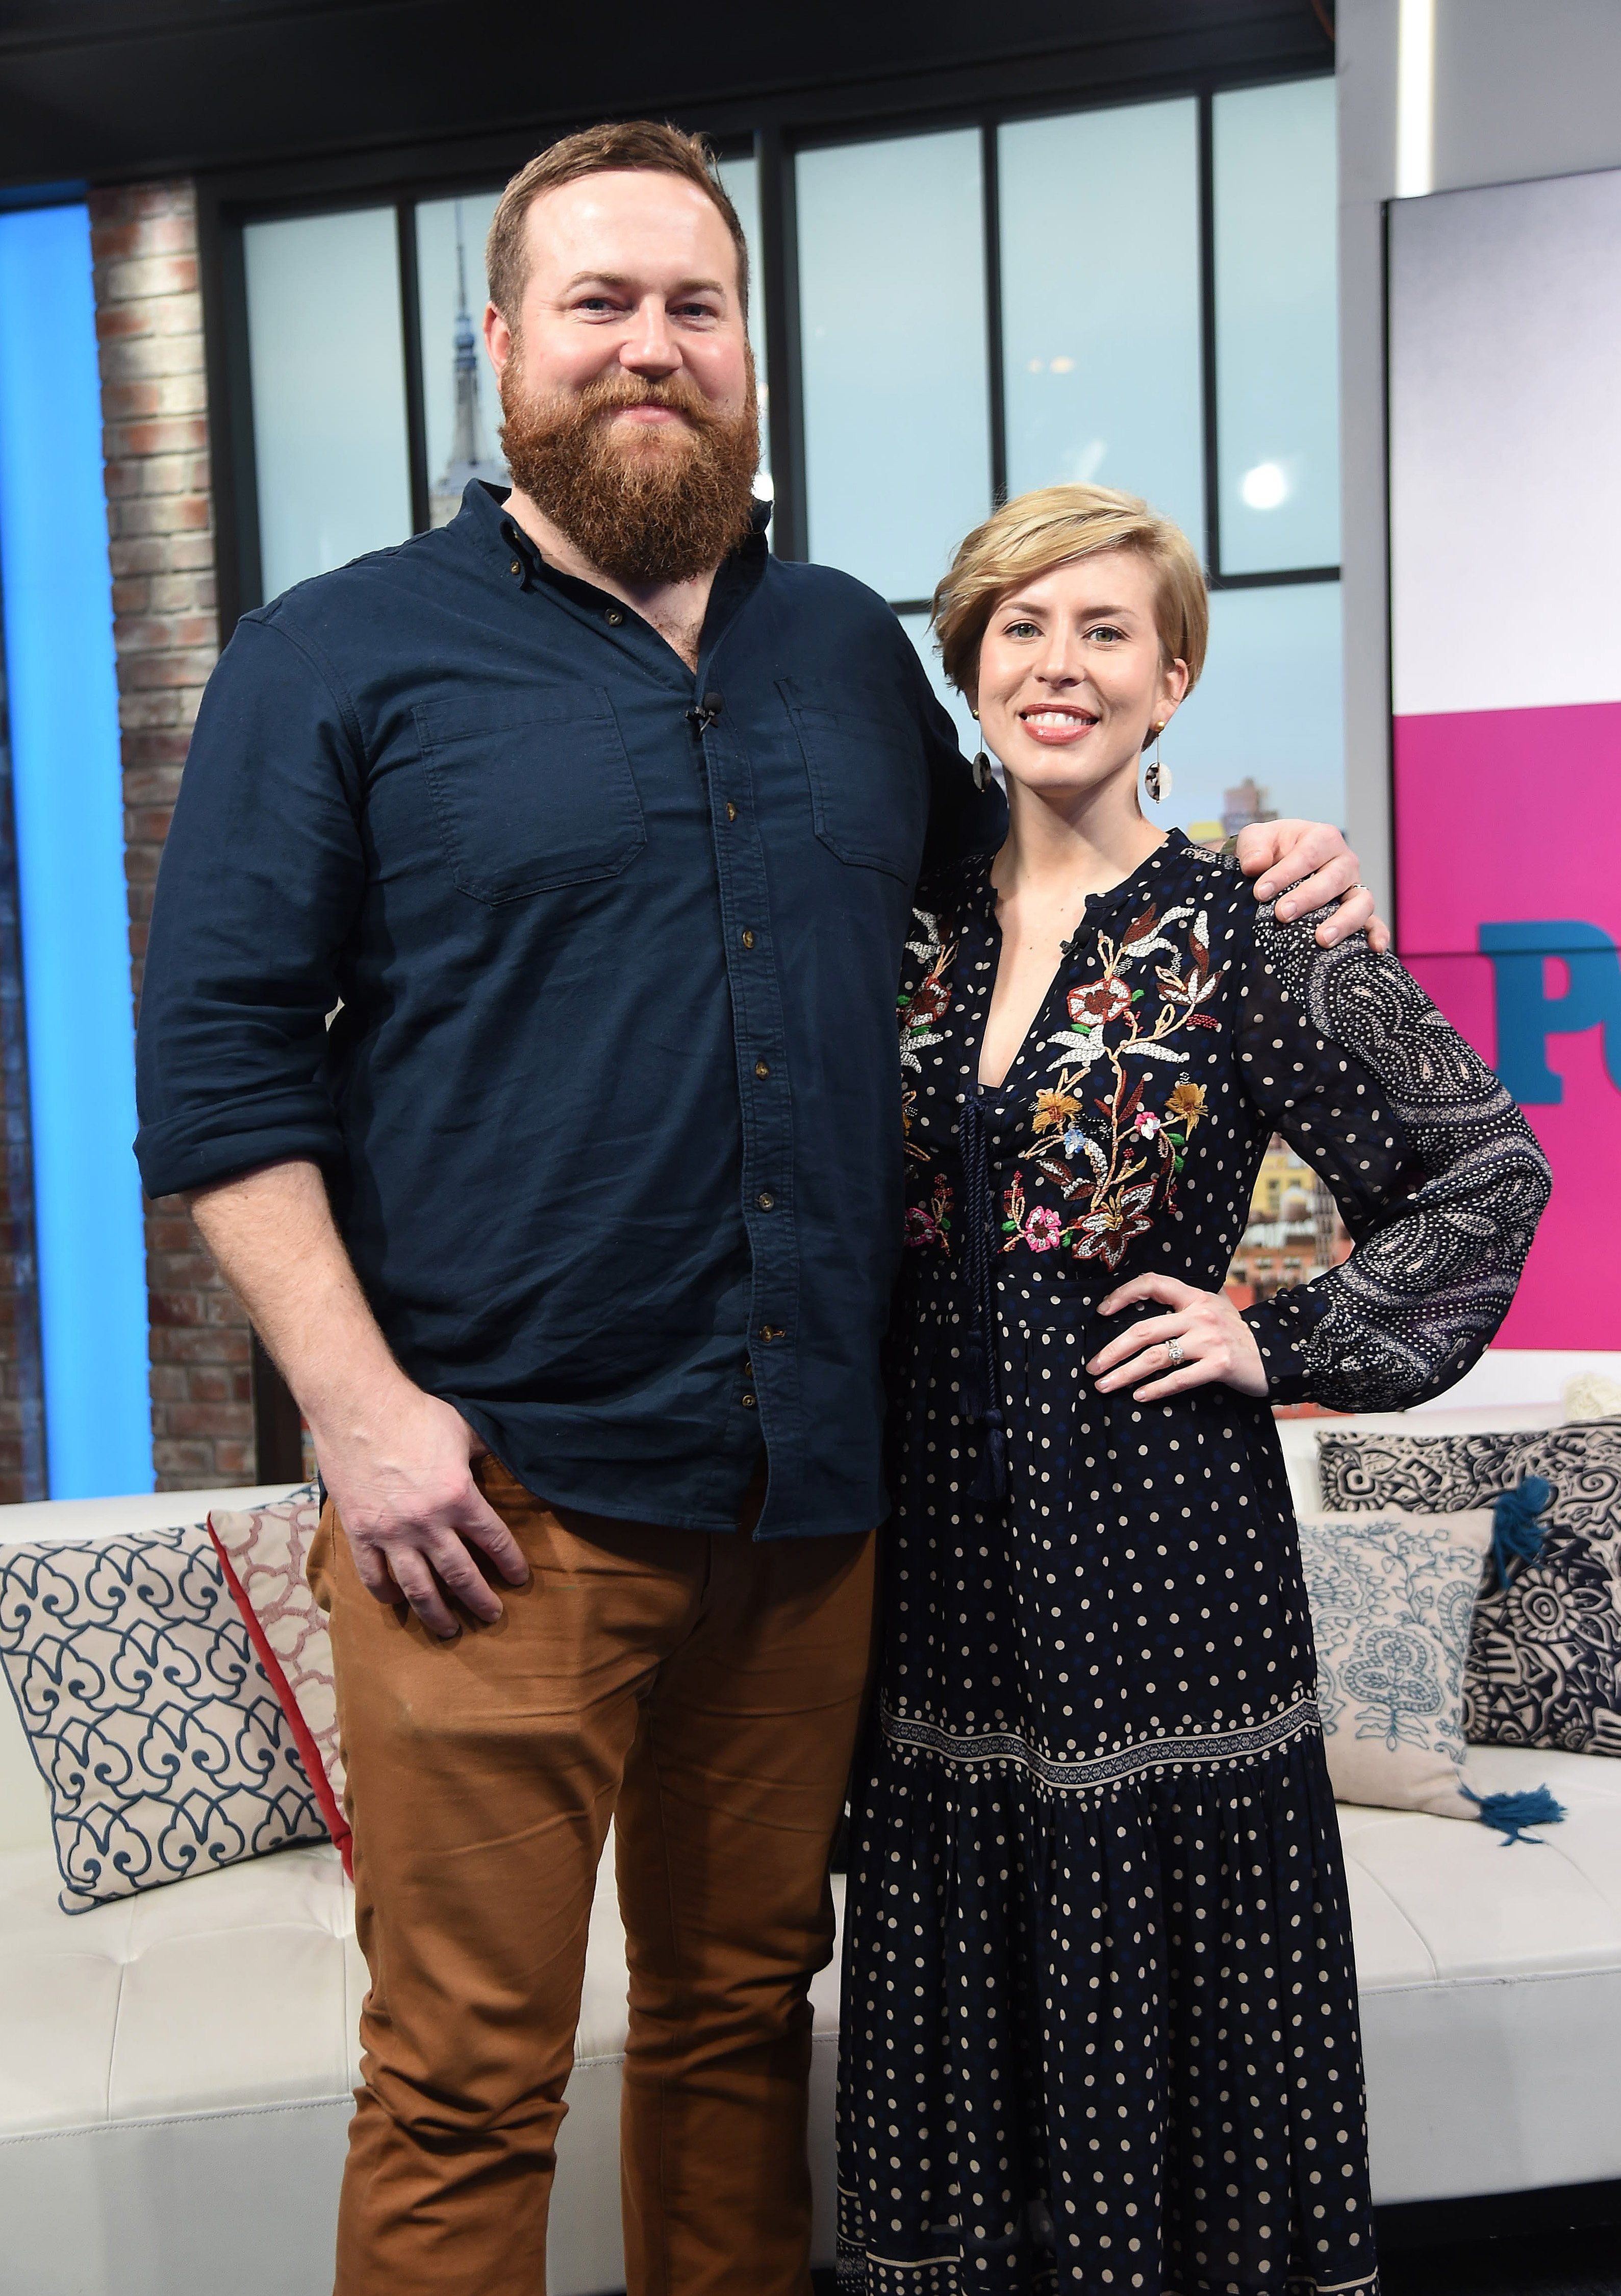 """HGTV """"Home Town"""" stars Ben Napier and Erin Napier visit People Now on January 08, 2020 in New York City.   Source: Getty Images"""